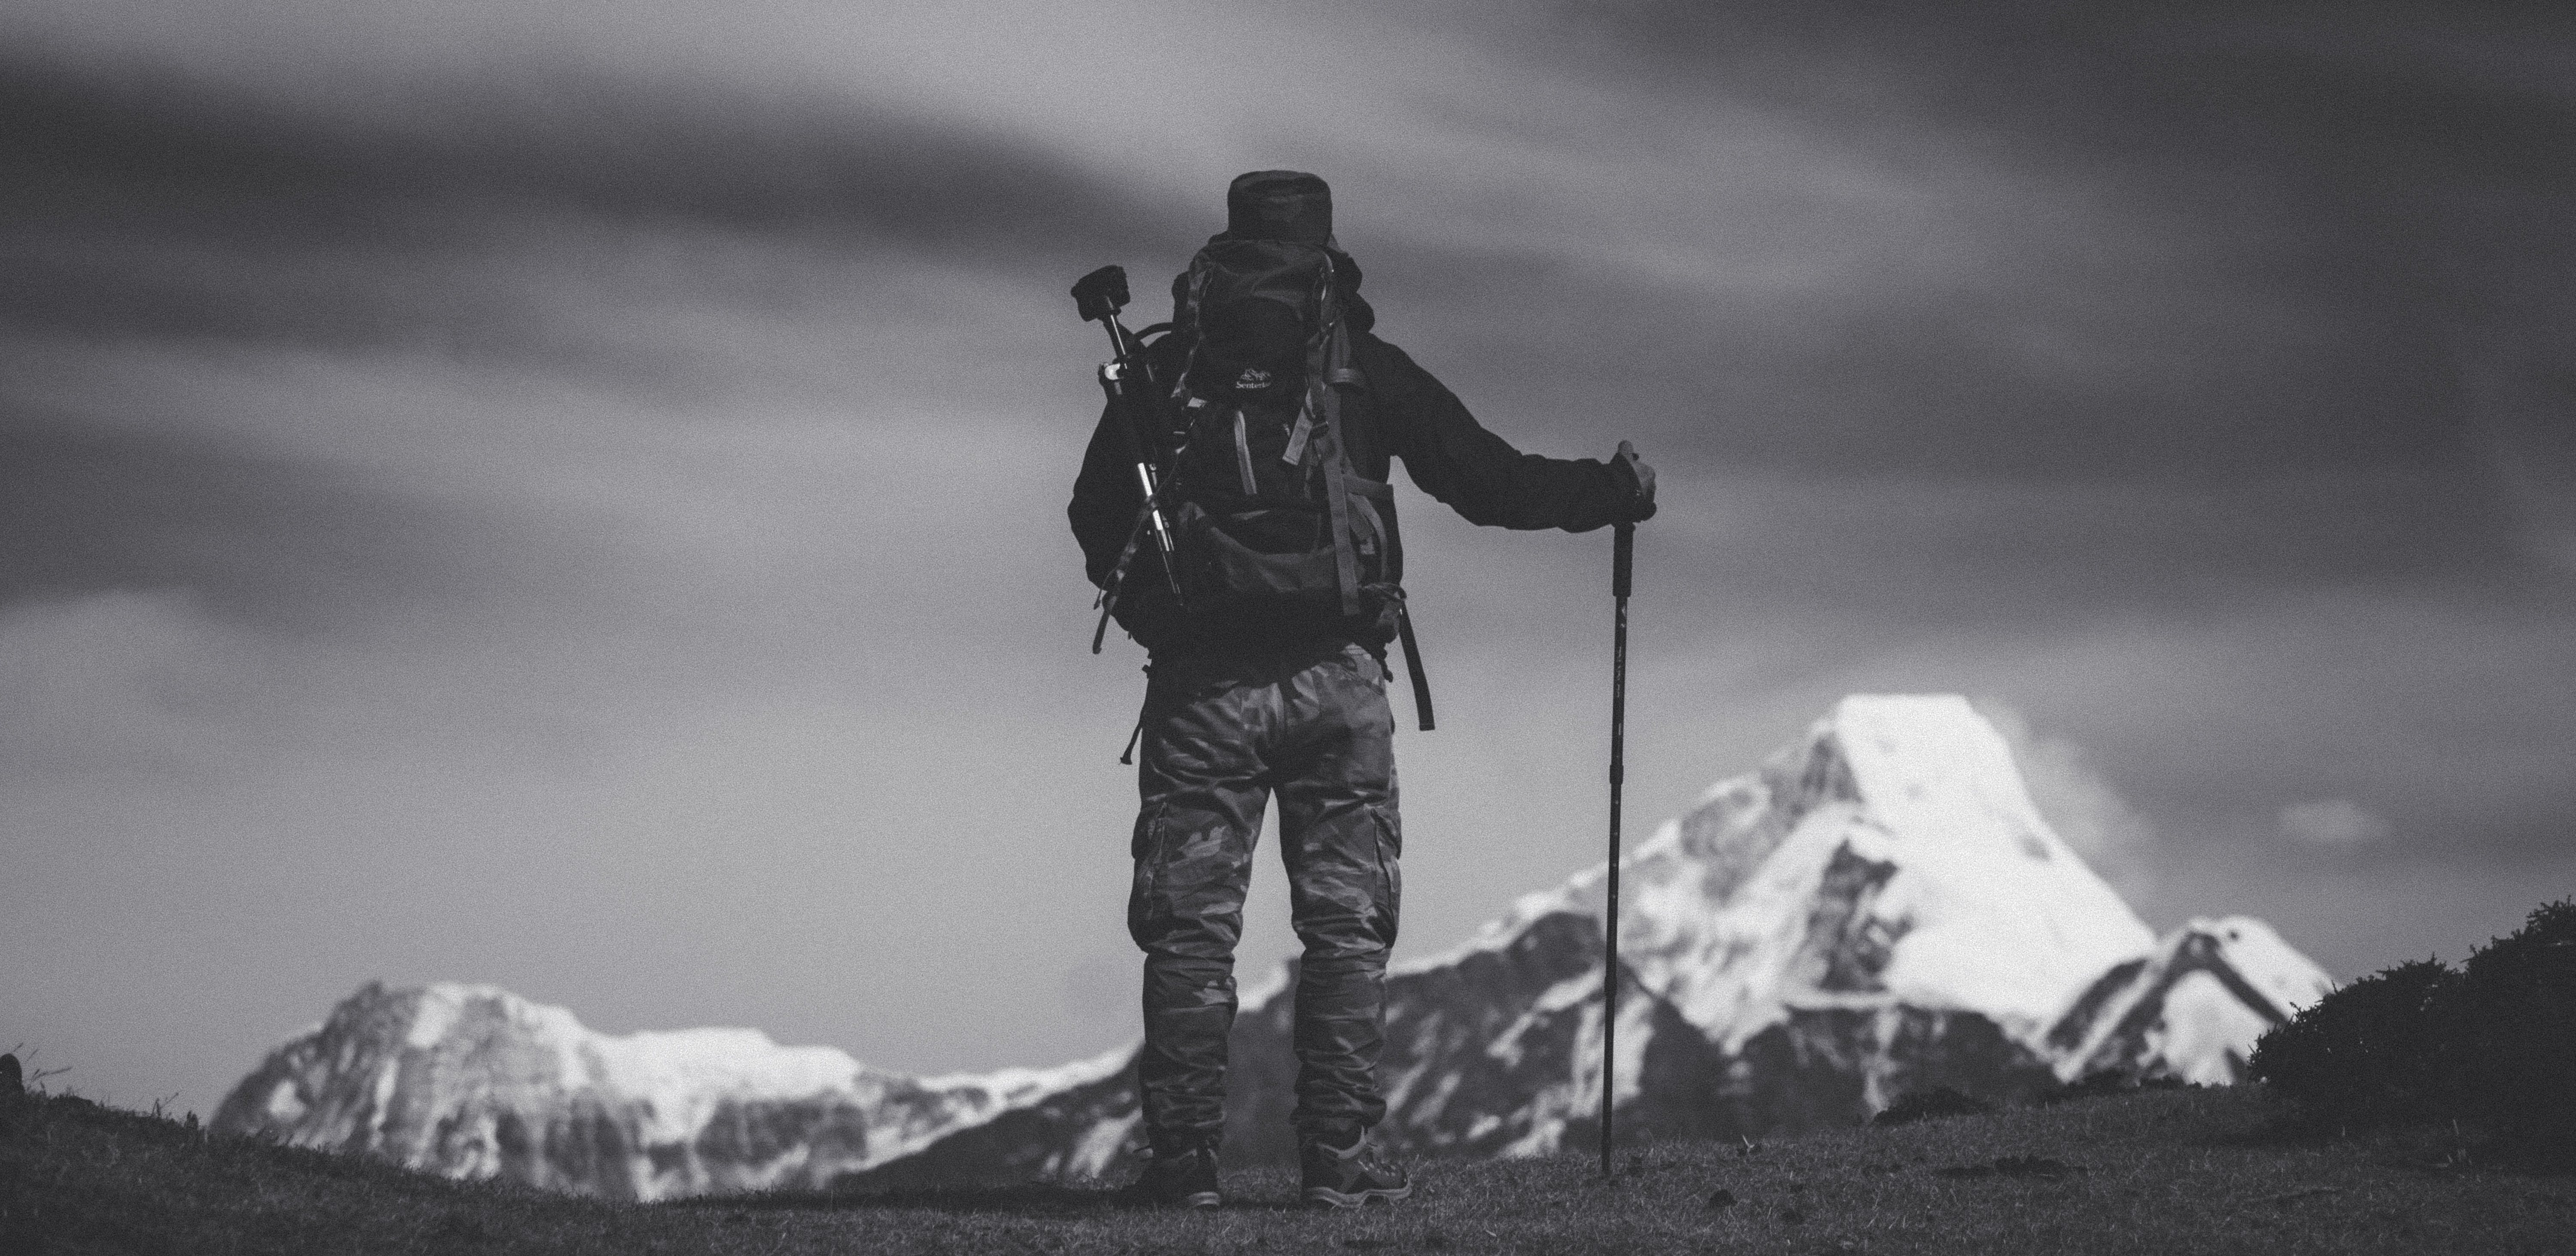 Grayscale Photo of Man Standing on Ground